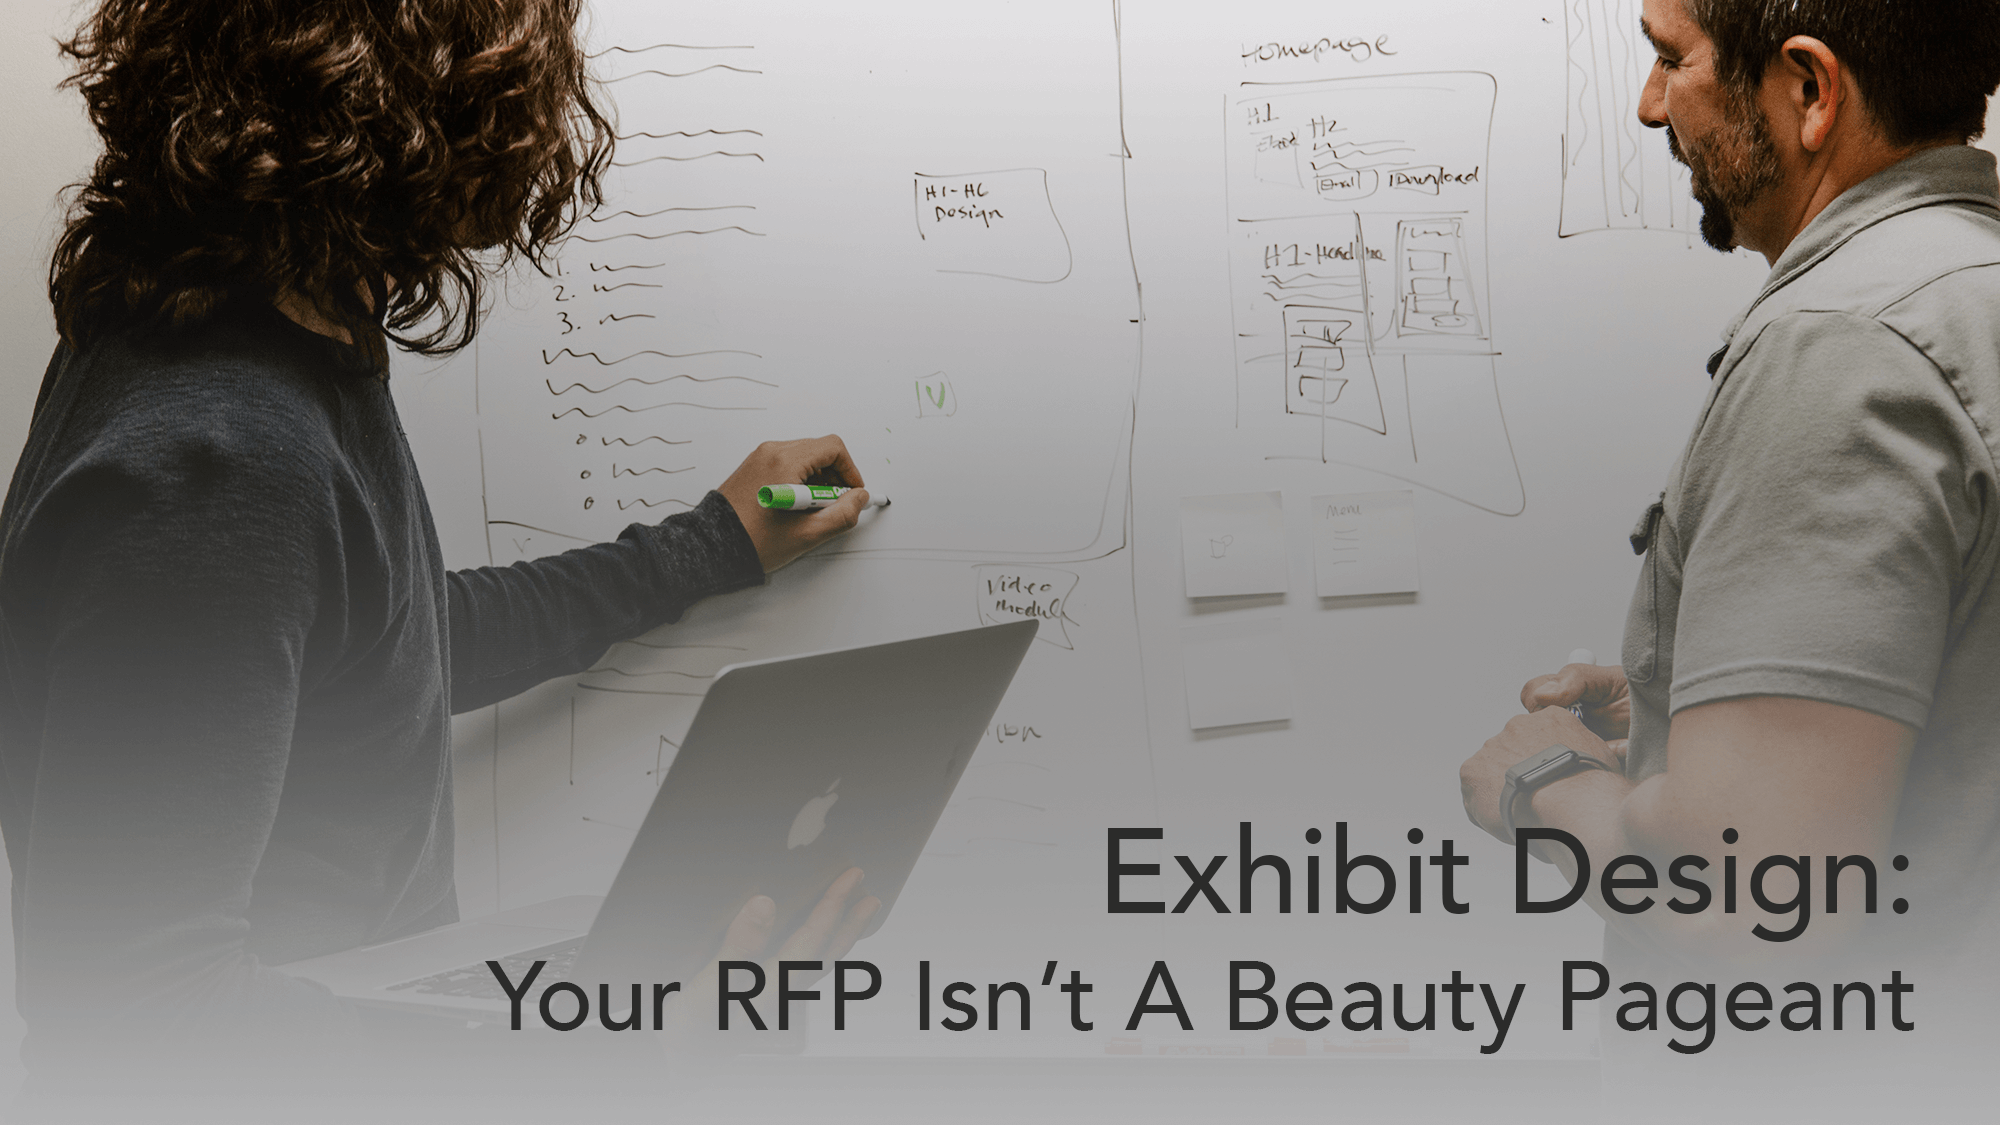 exhibit design rfp